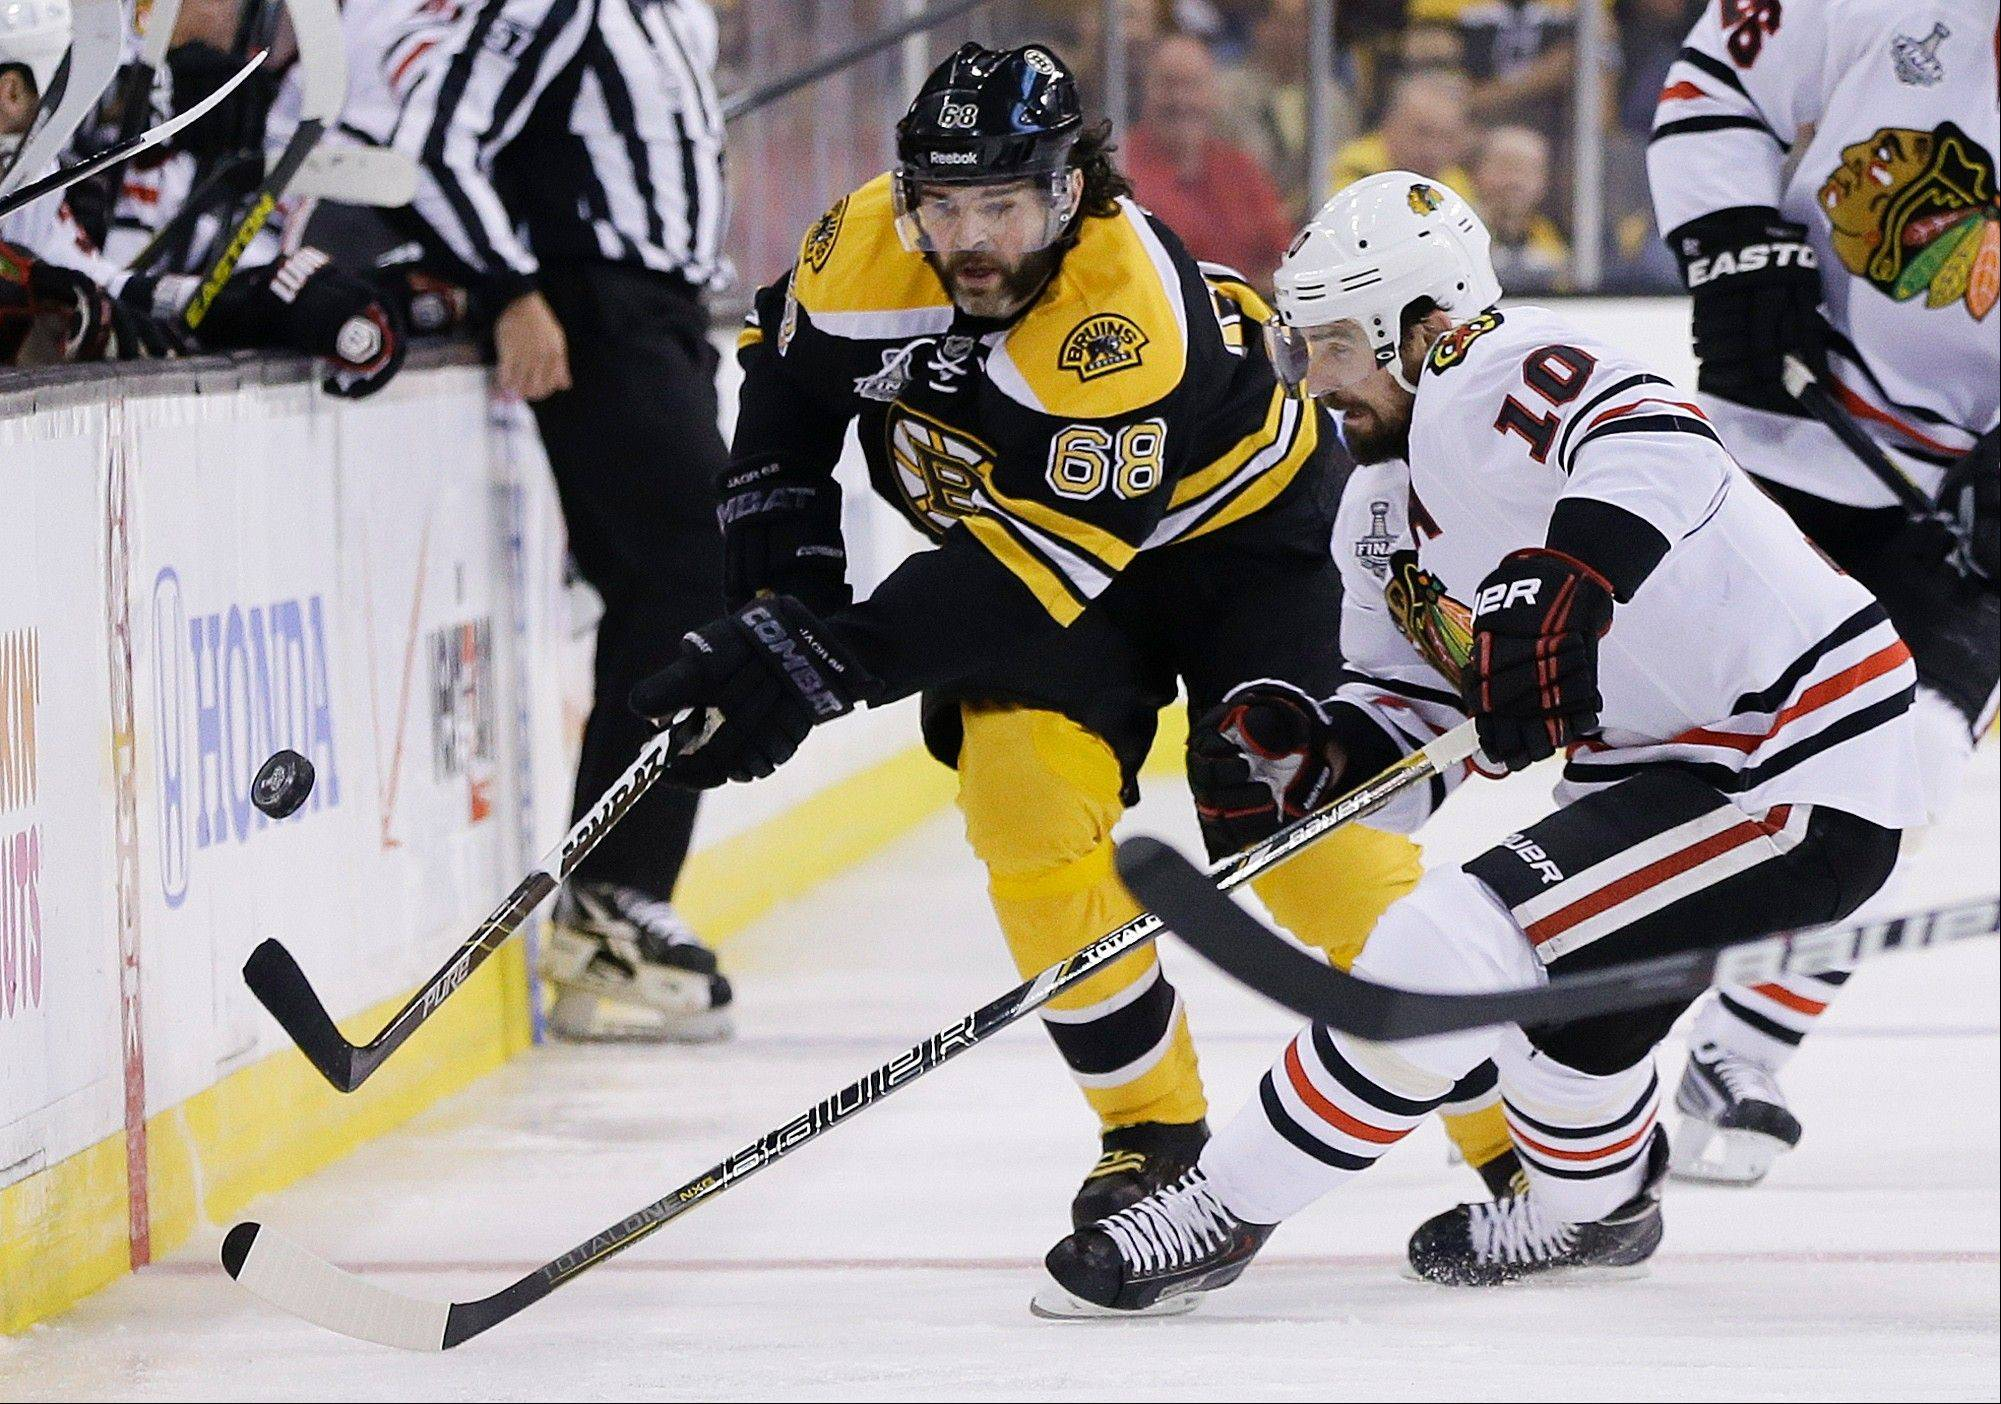 Chicago Blackhawks center Patrick Sharp (10) and Boston Bruins right wing Jaromir Jagr (68), of the Czech Republic, pursue the puck during the first period in Game 6 of the NHL hockey Stanley Cup Finals Monday, June 24, 2013 in Boston.